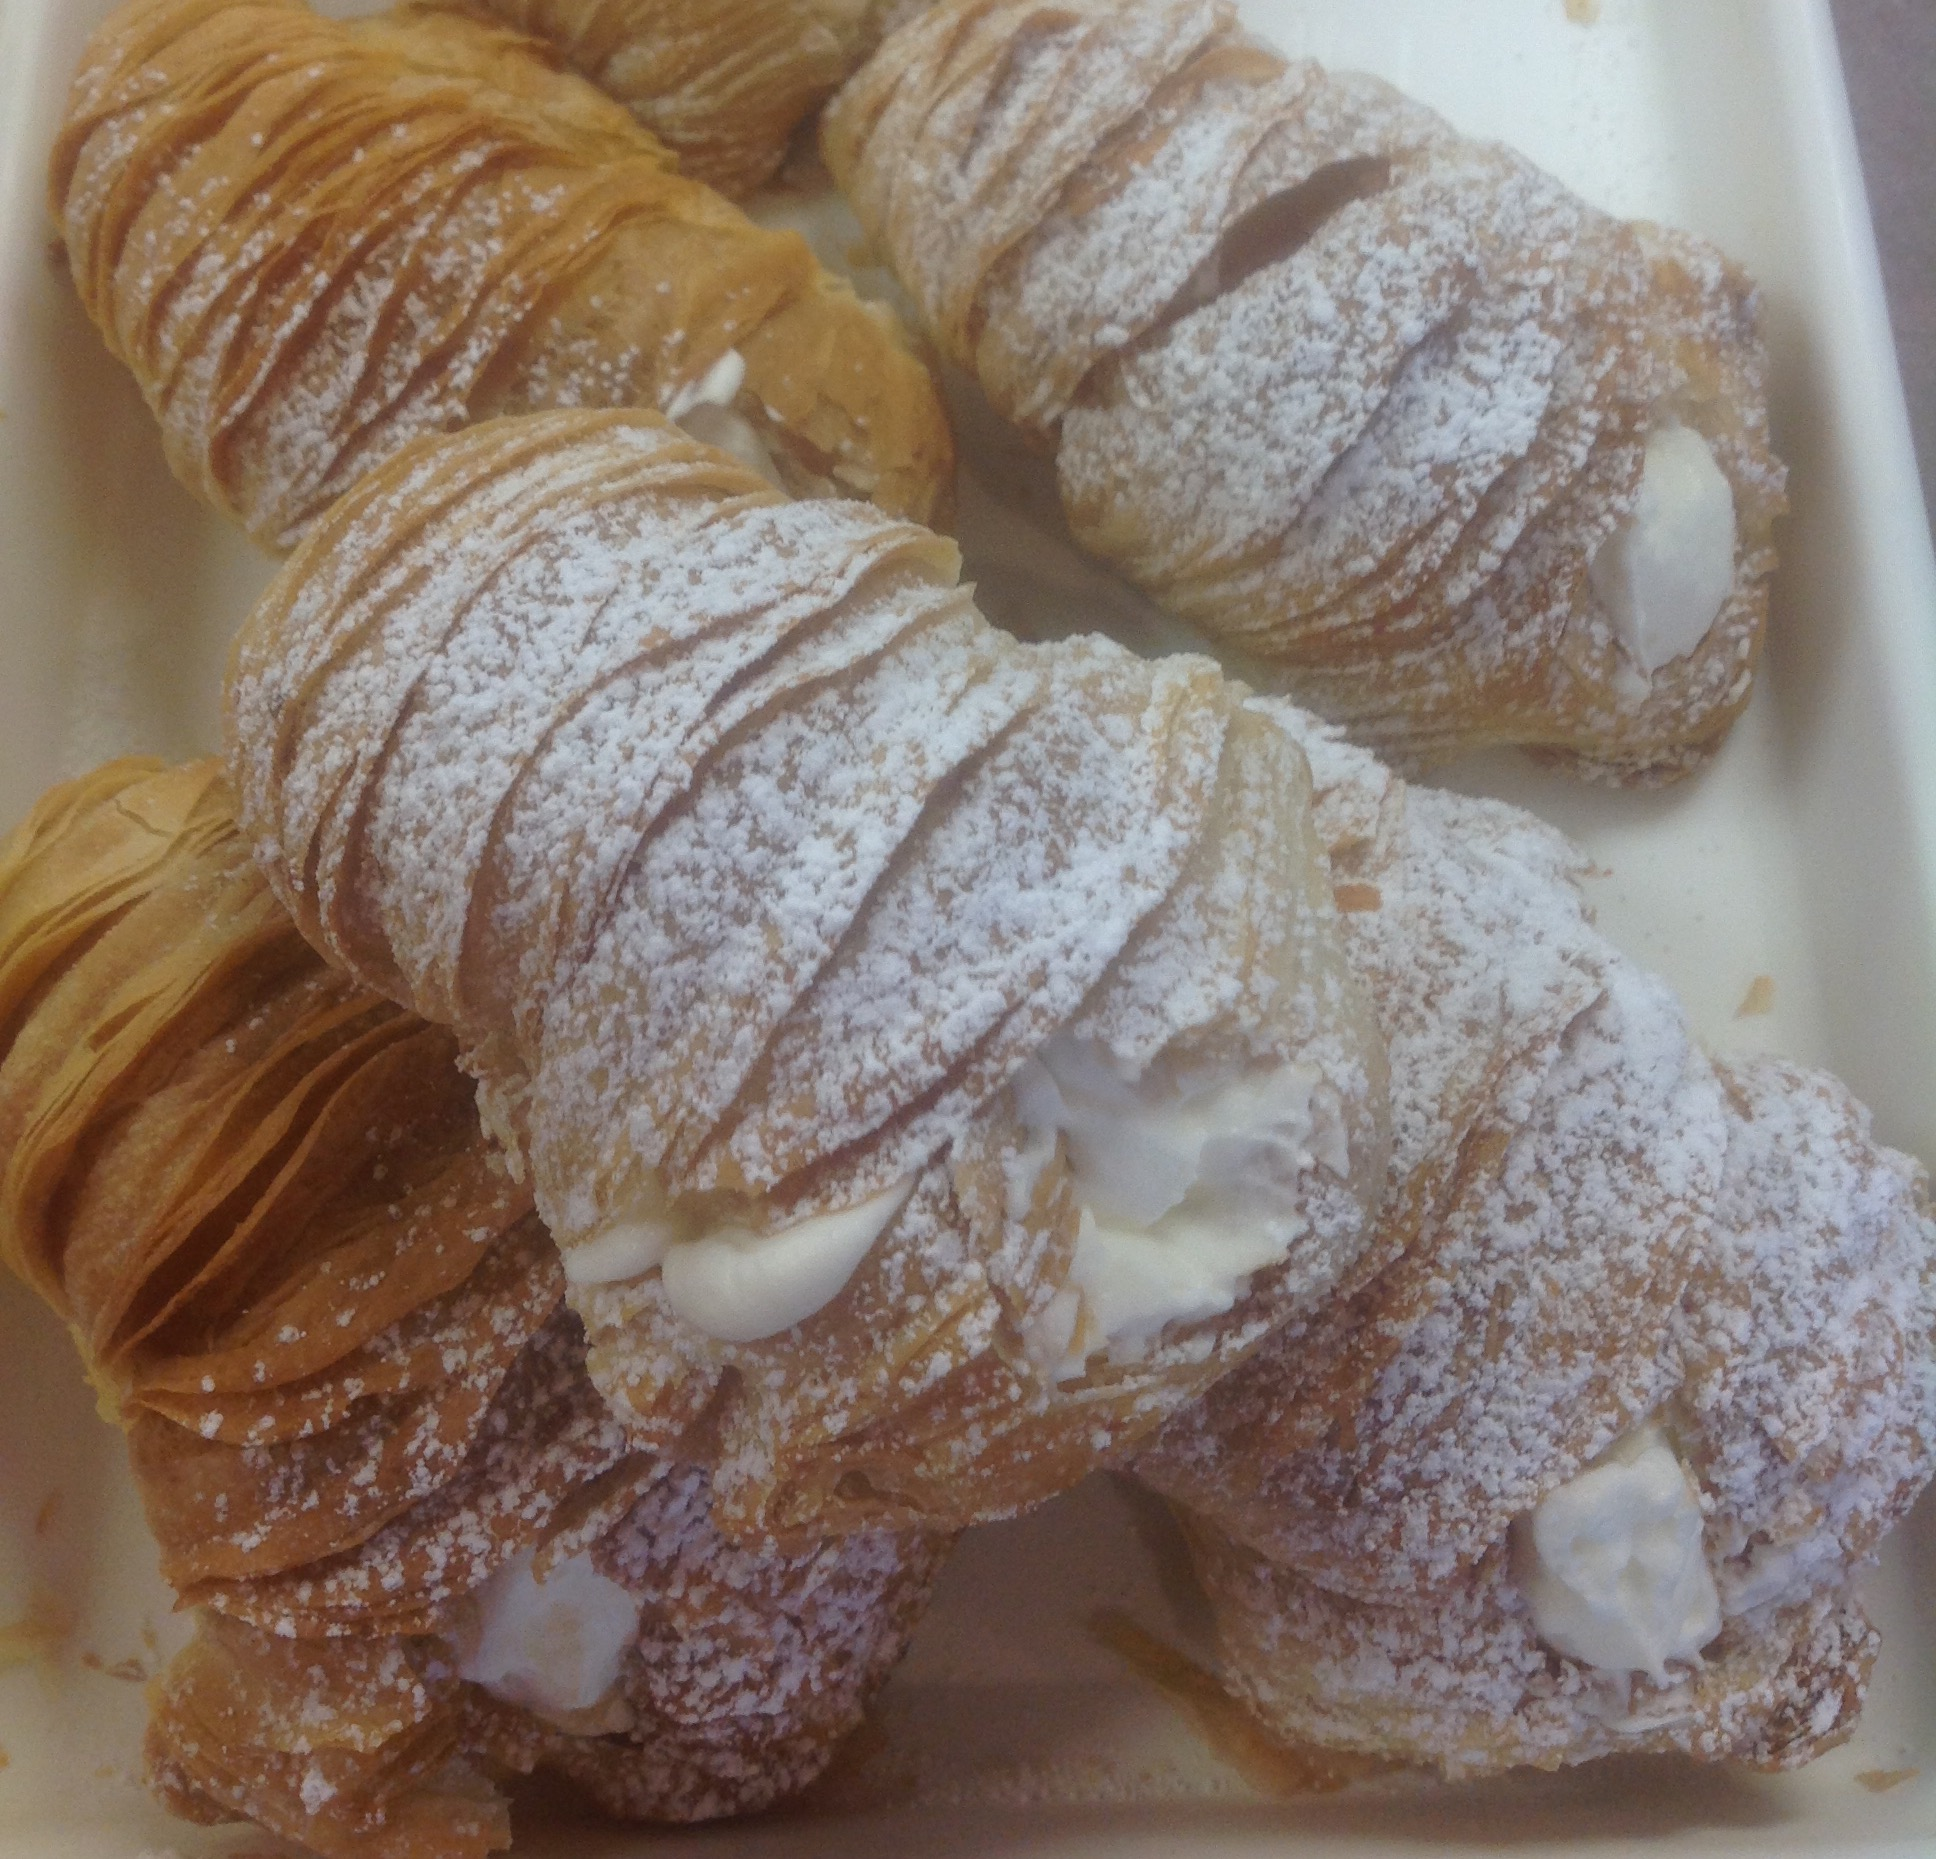 Lobster Tails at Dolce and Biscotti Italian Bakery